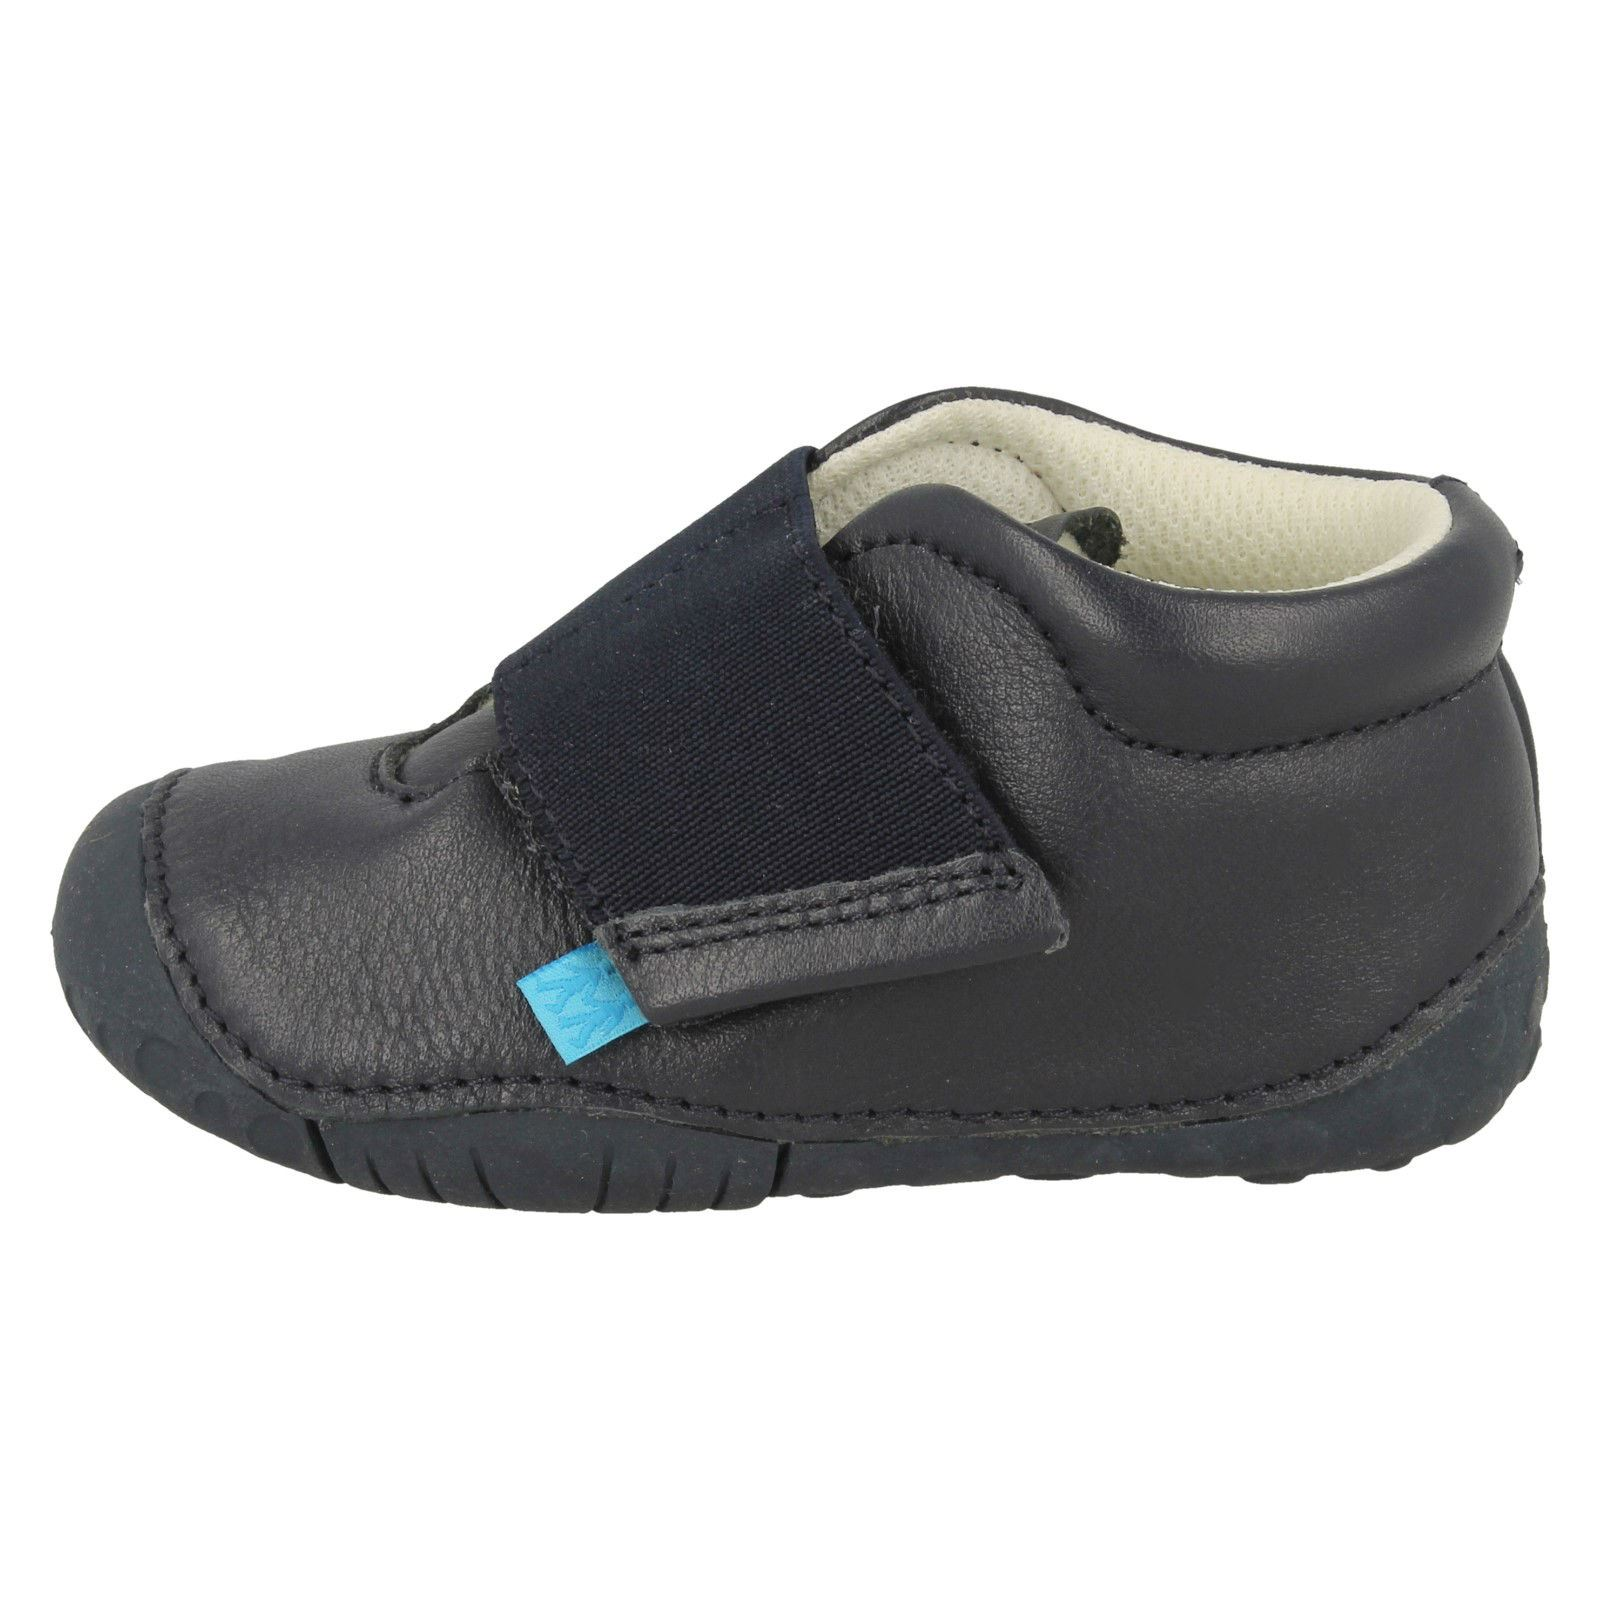 Boys Calzado Pre Casual walkers Startrite azul rqrOwvnC